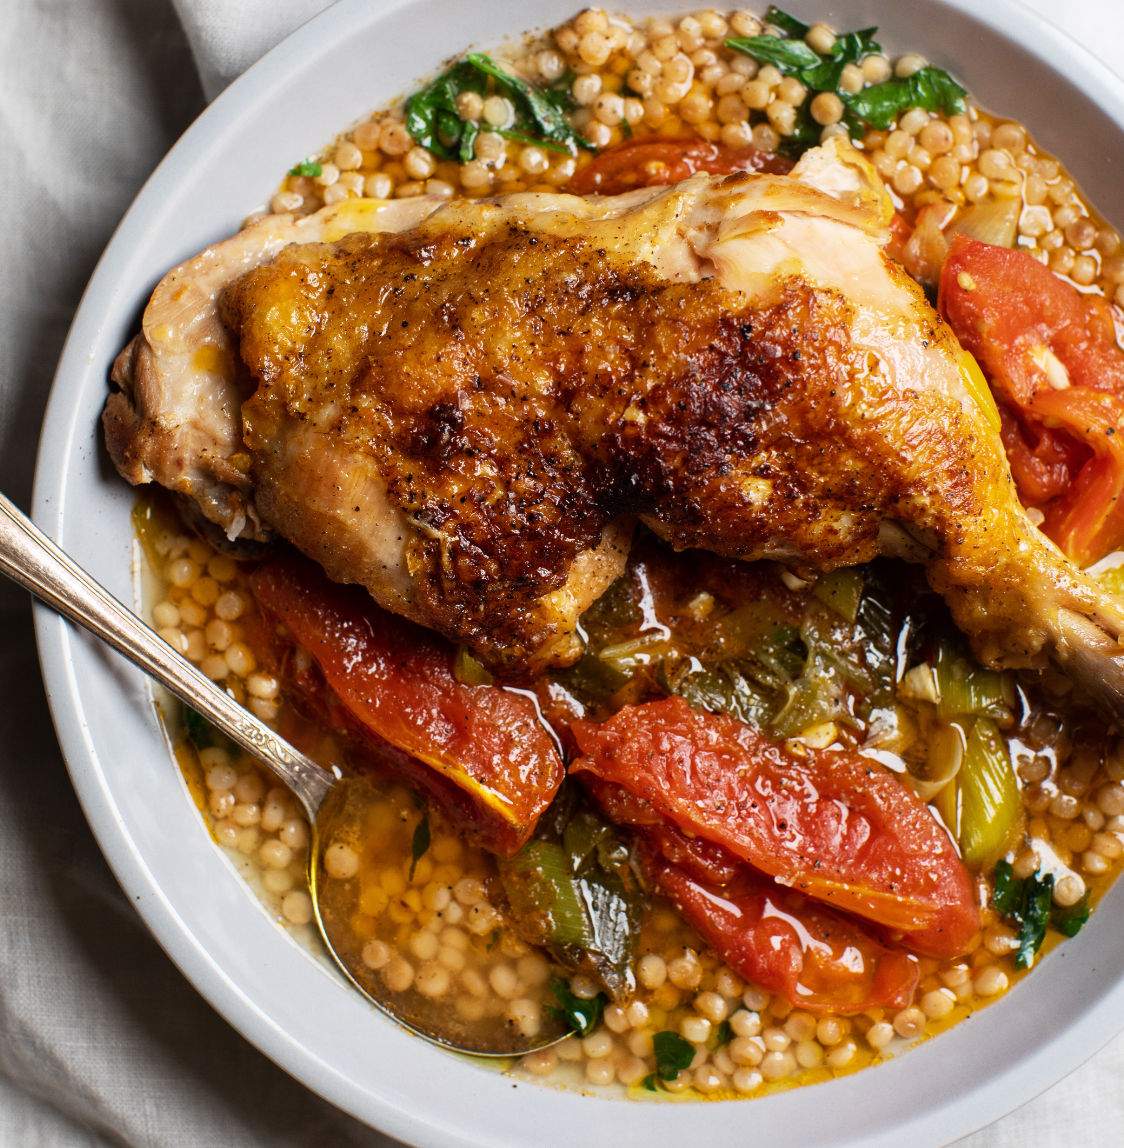 Braised Chicken with Leeks and Tomatoes